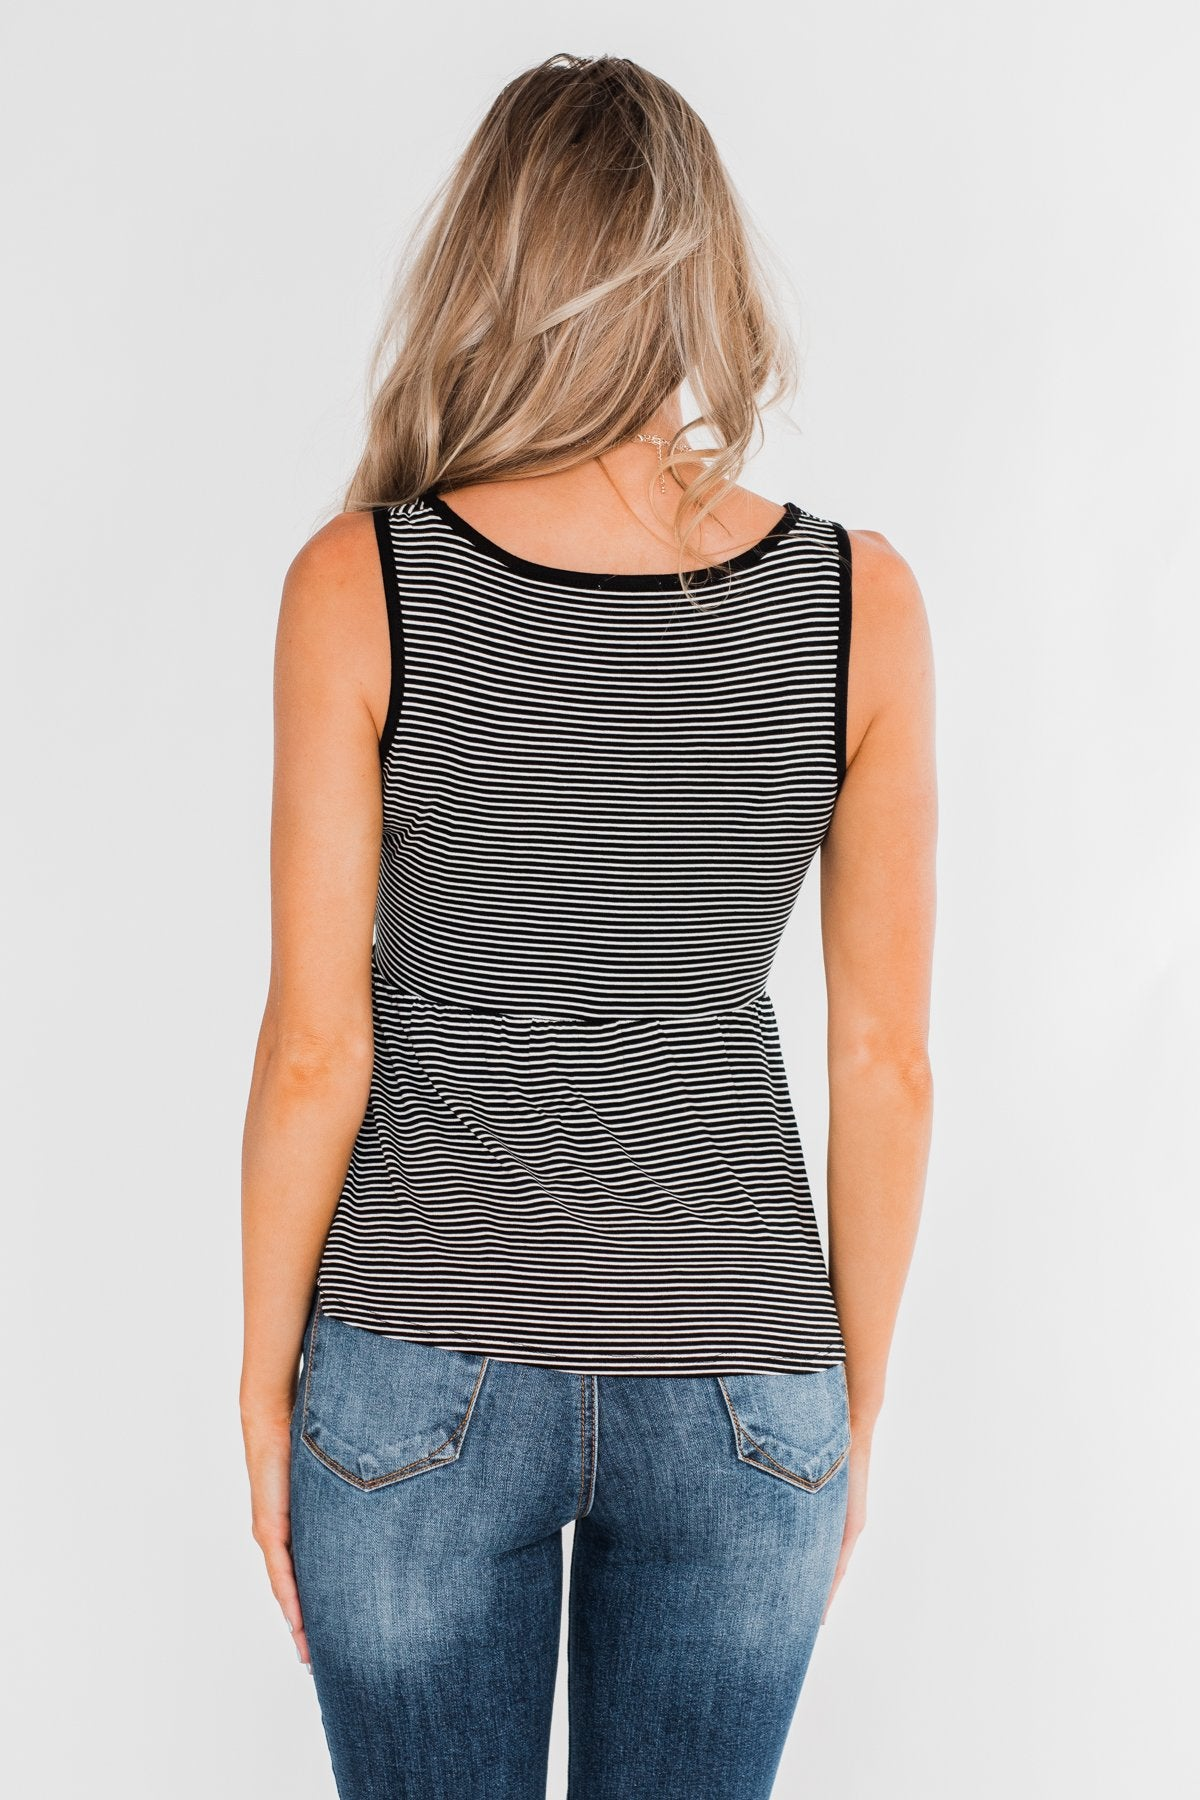 She's Got The Rhythm Striped Tank Top- Black